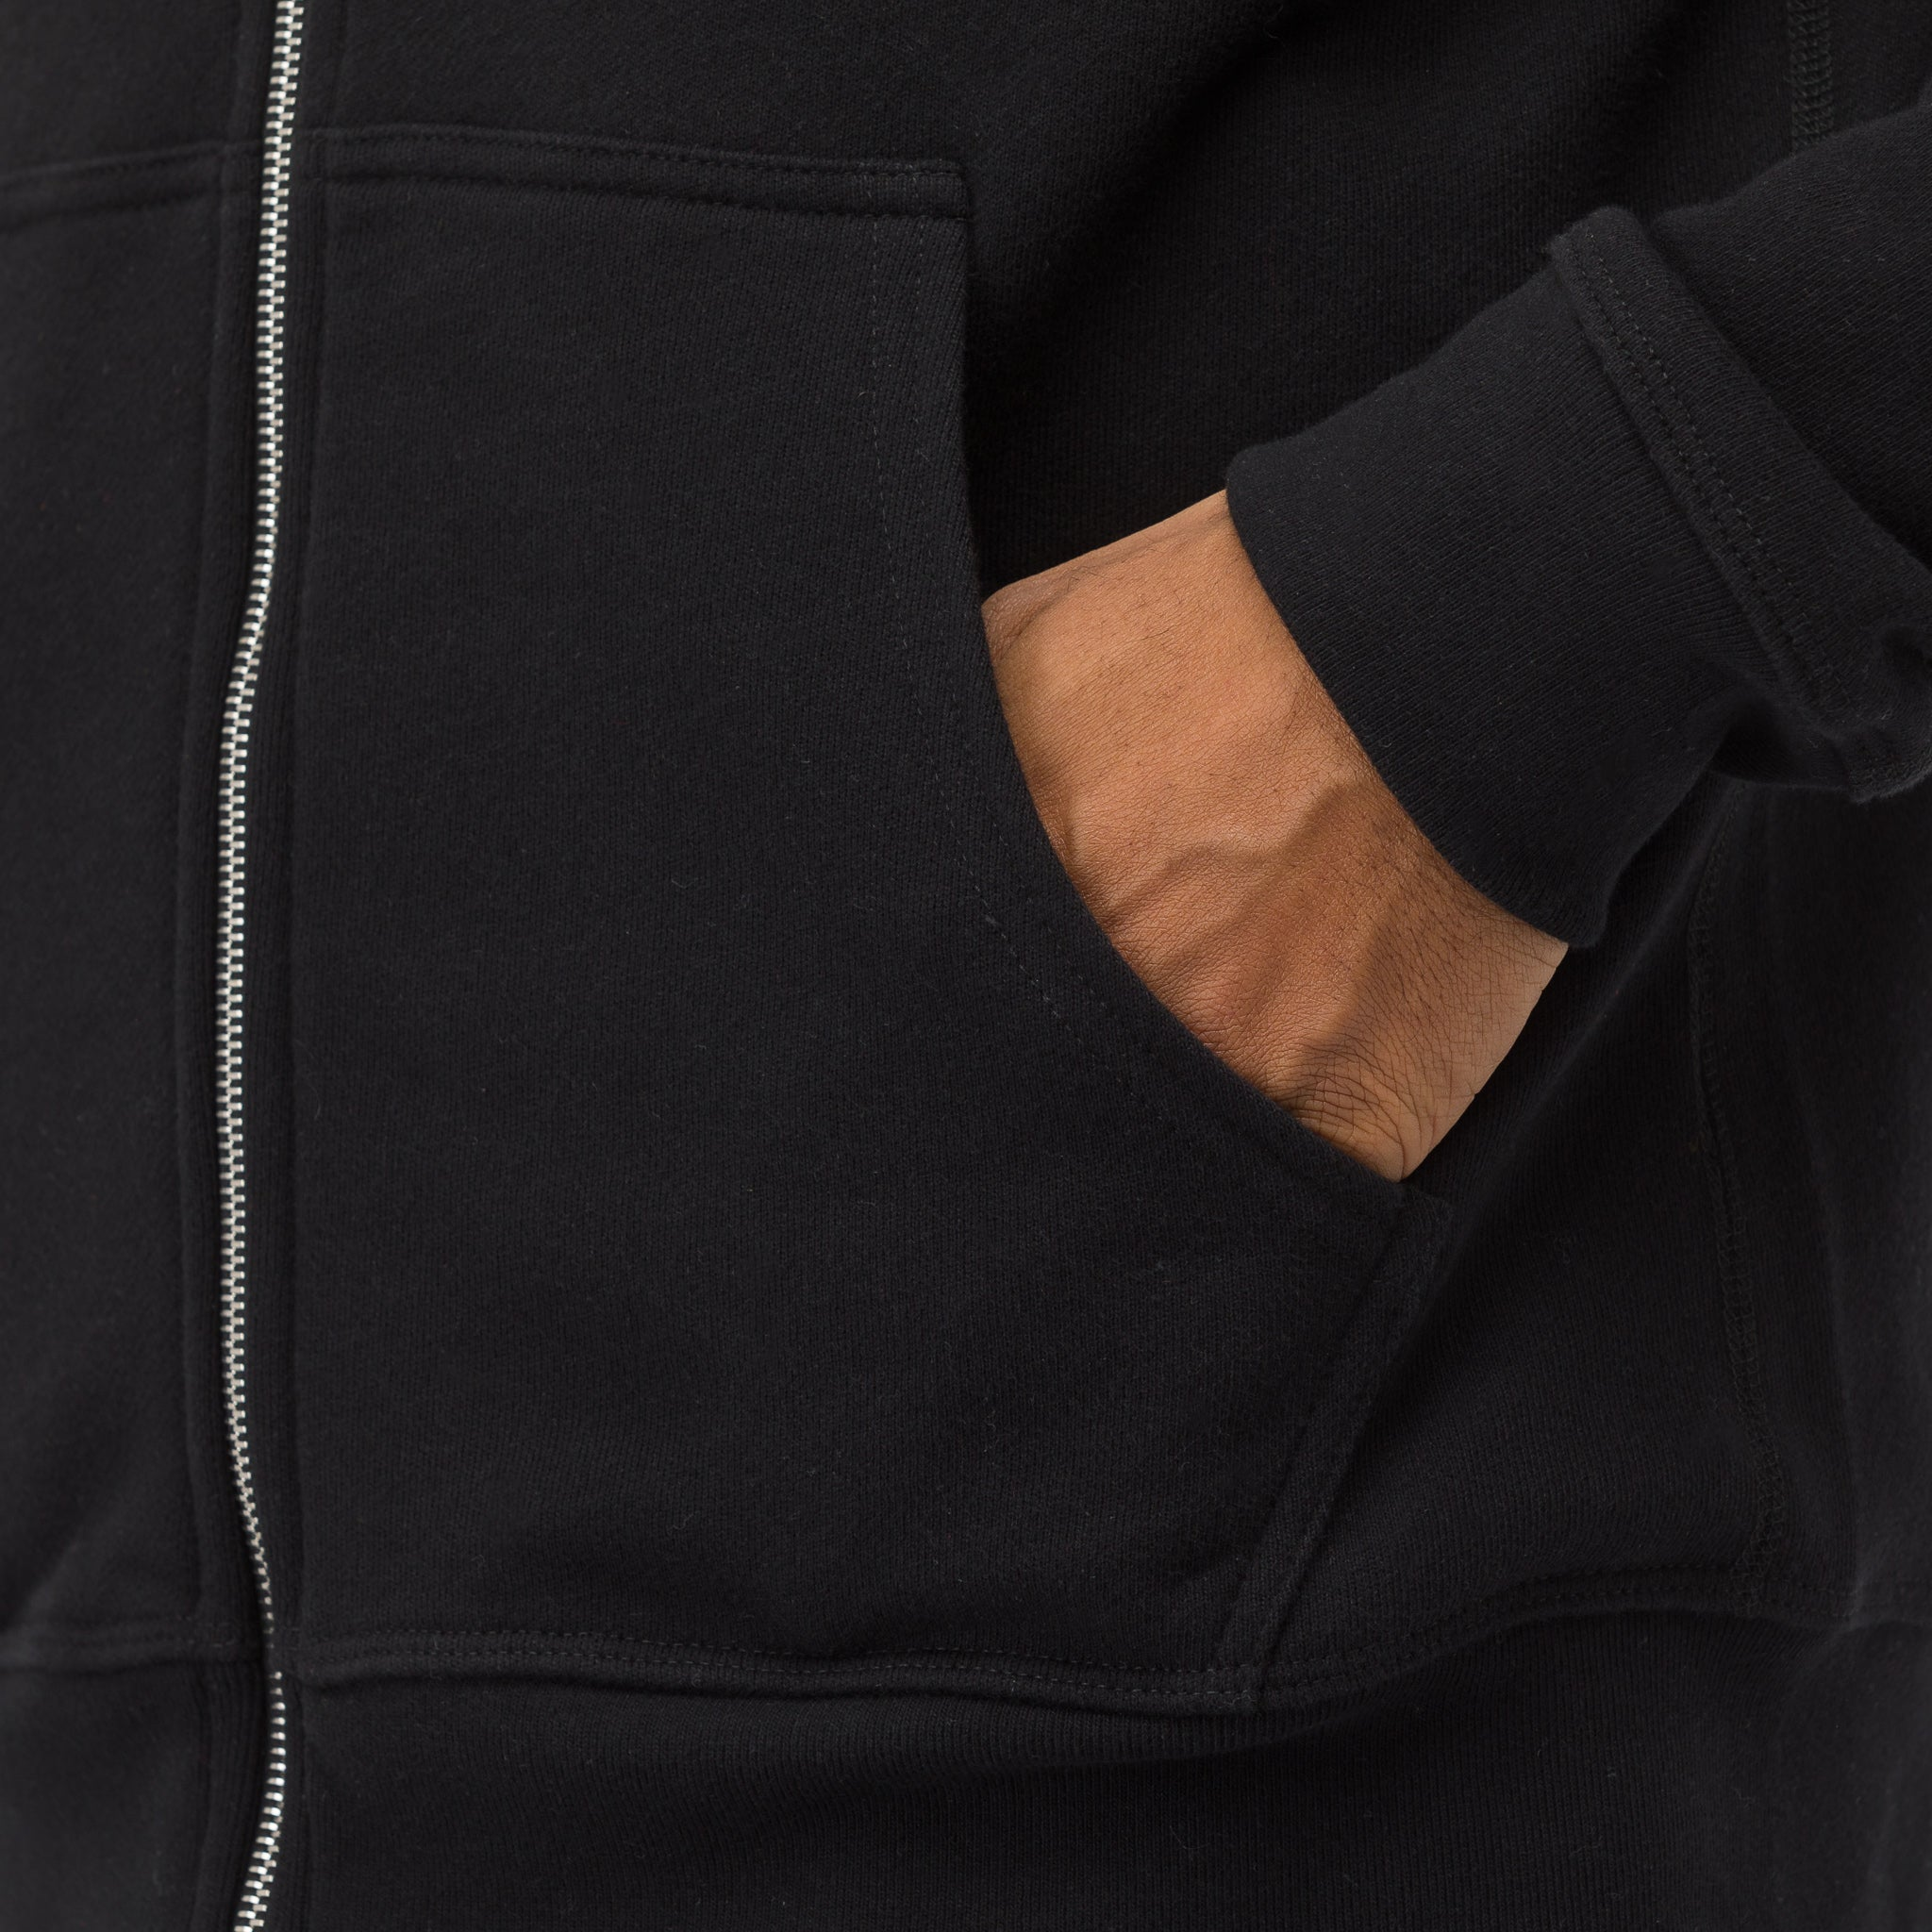 Flash 2 Full Zip Sweatshirt in Black